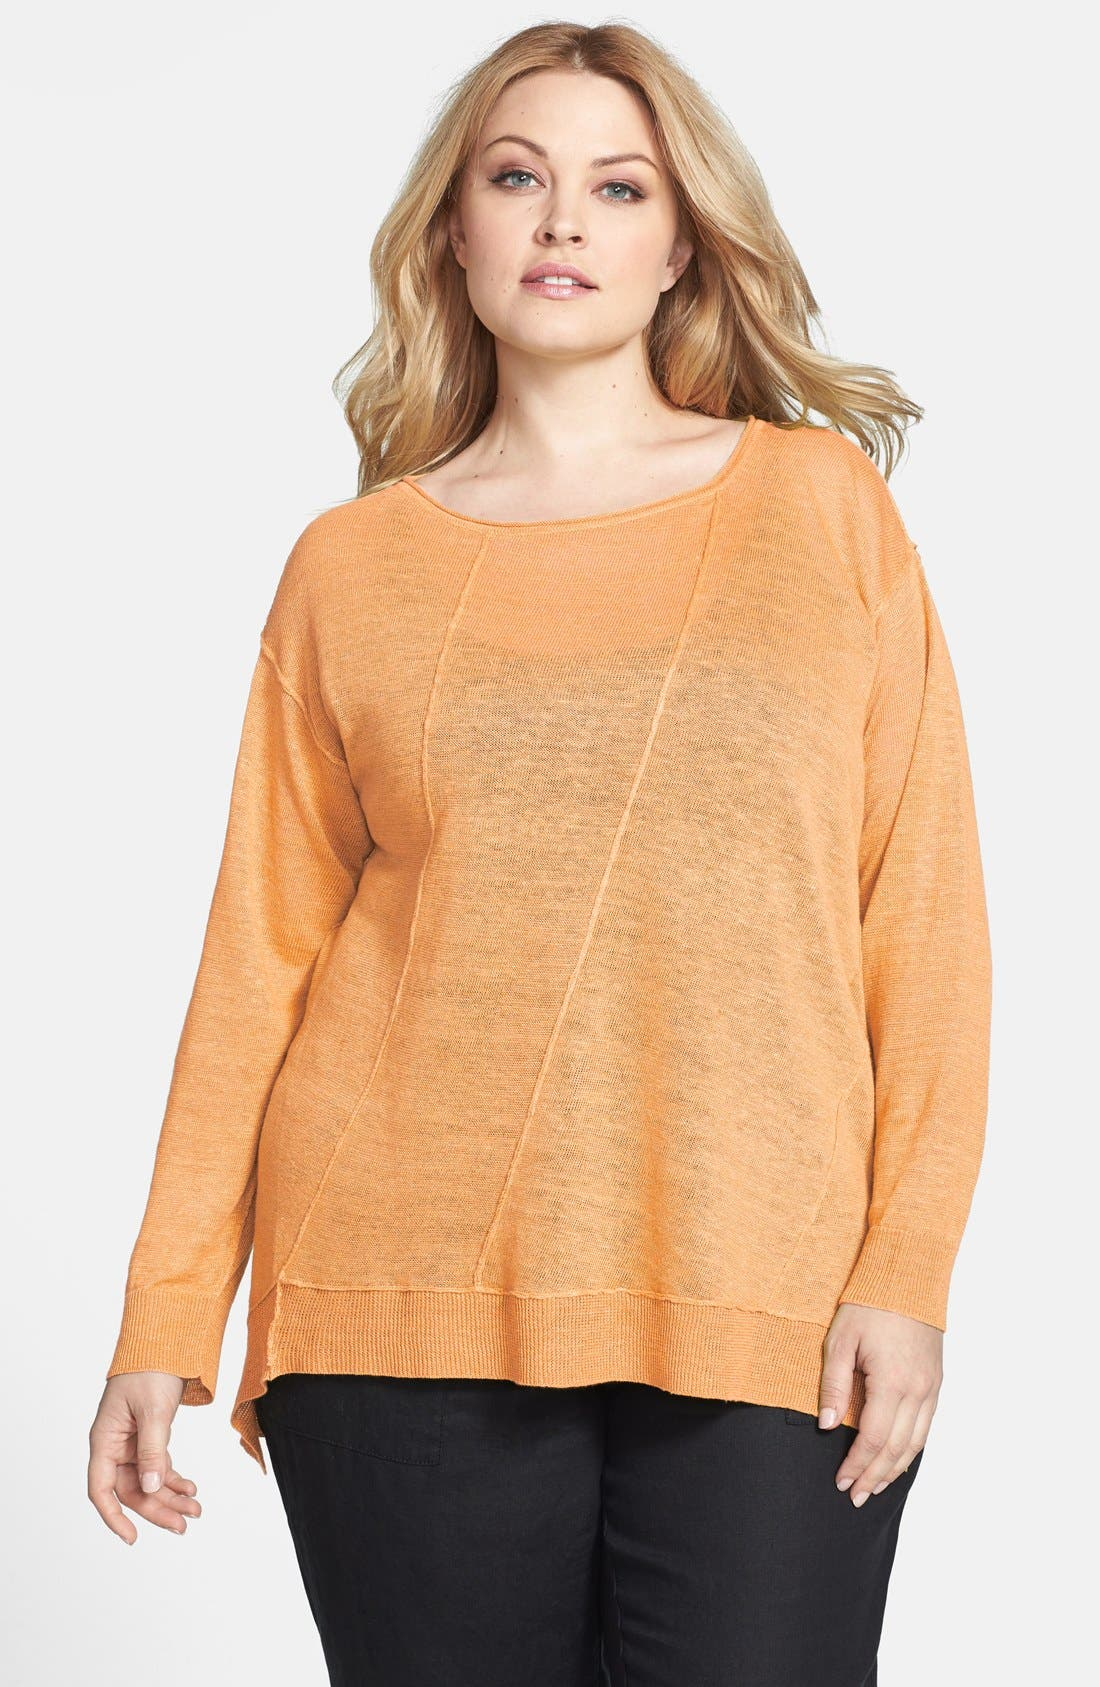 Alternate Image 1 Selected - Eileen Fisher Organic Linen Boat Neck Top (Plus Size)